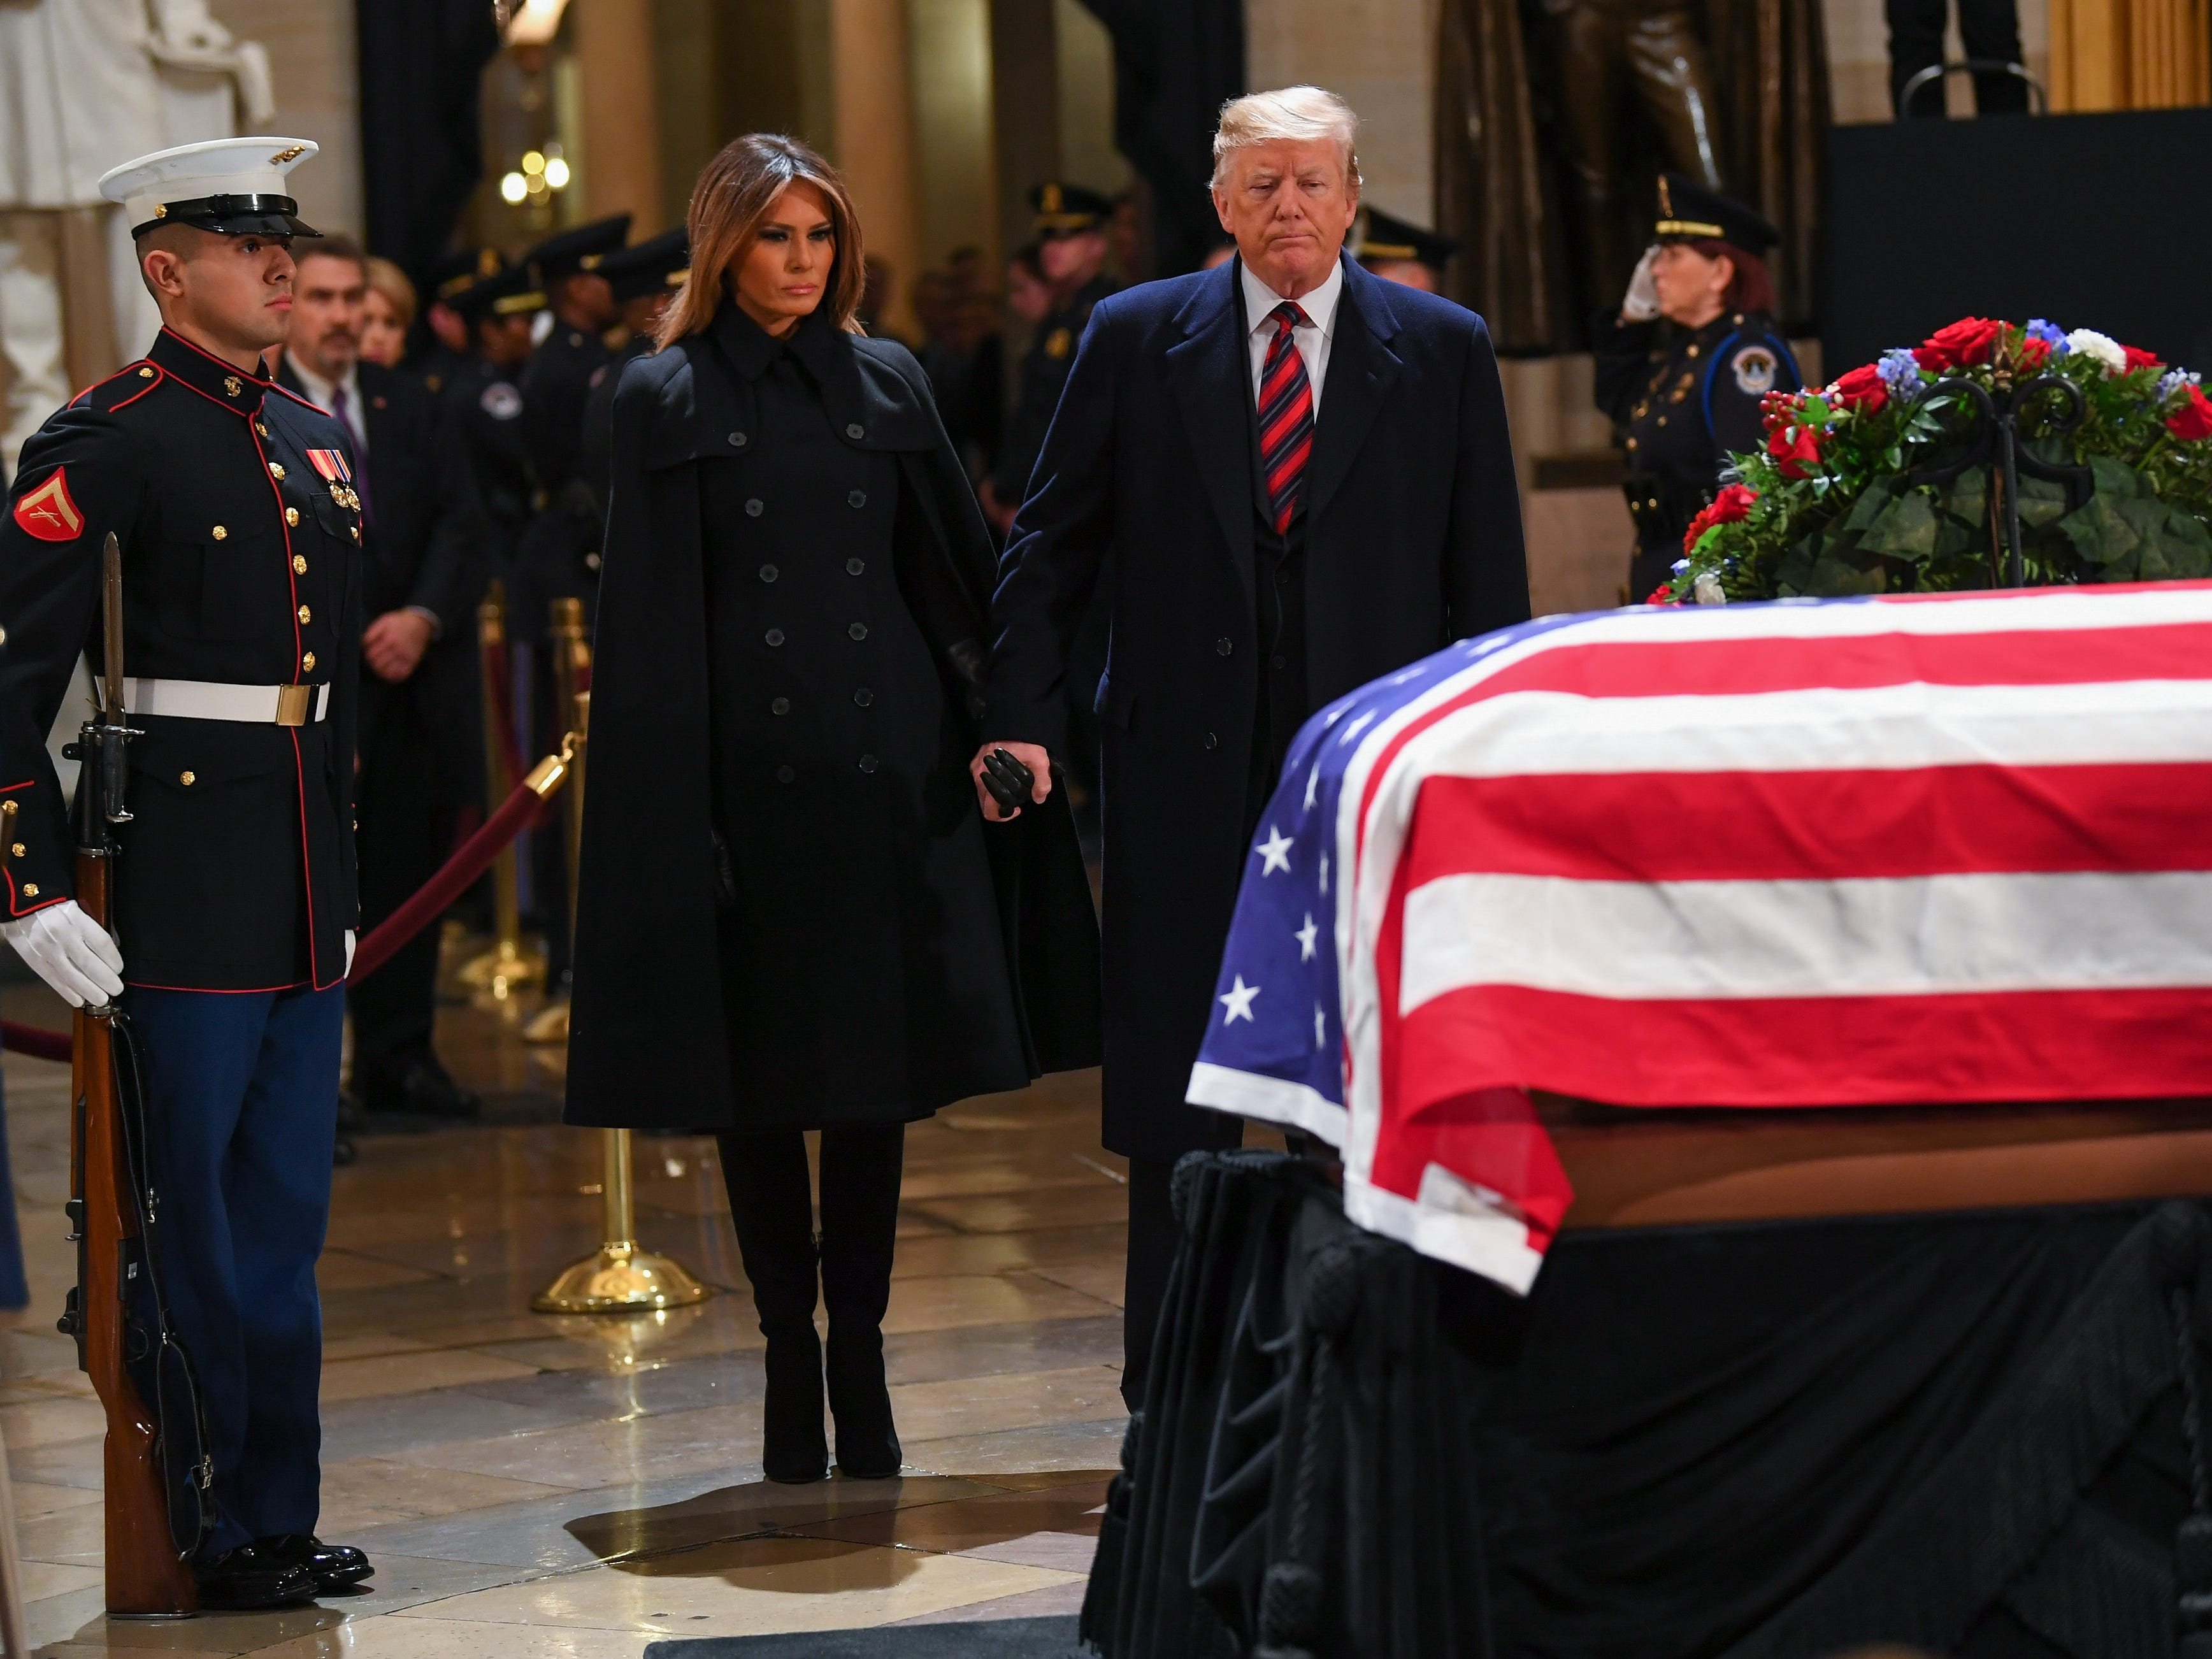 President Trump and First Lady Melania Trump pay their respects to former President George H.W. Bush as the 41st President lies in state at the U.S. Capitol Rotunda.